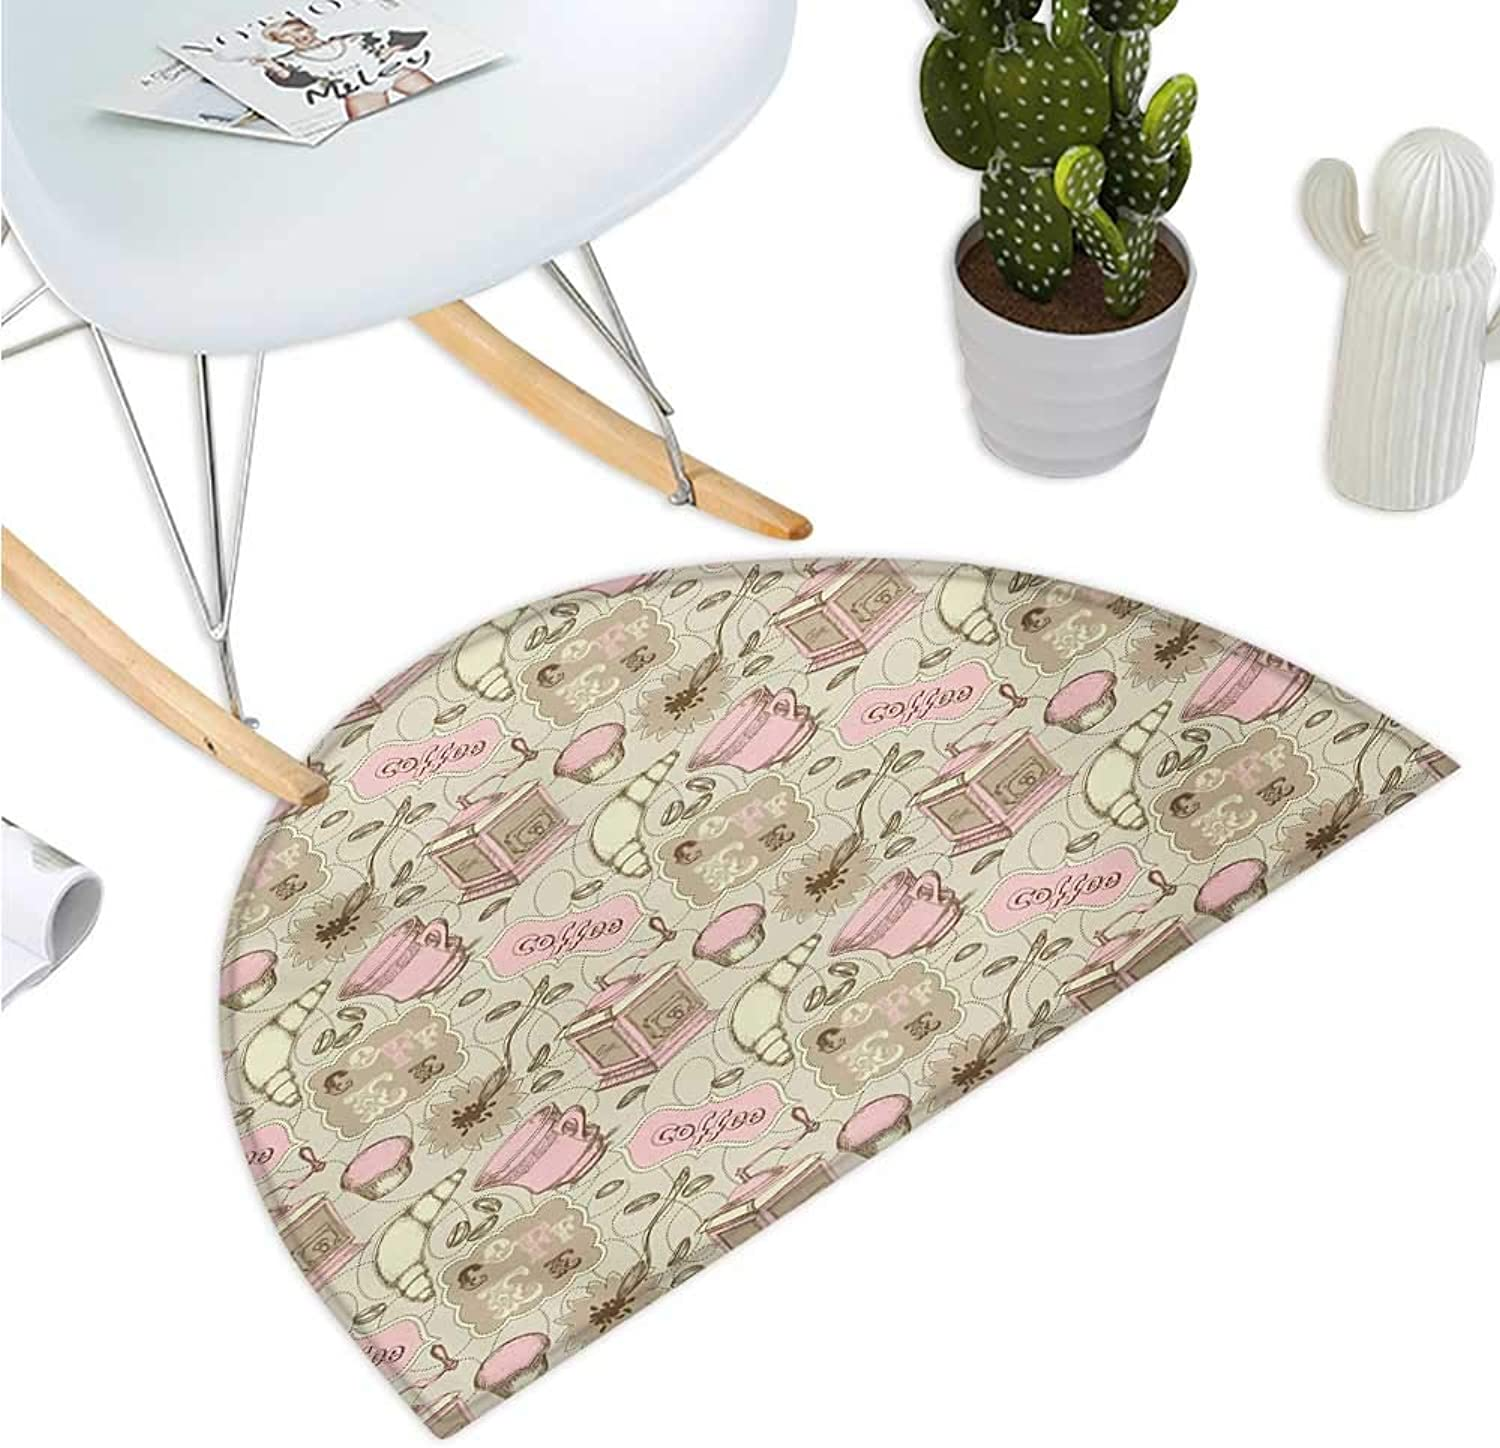 Cartoon Half Round Door mats Abstract Modern Image of Tea Pots Cups Cakes Croissants Bakery Image Entry Door Mat H 35.4  xD 53.1  Grey Pale Pink and White